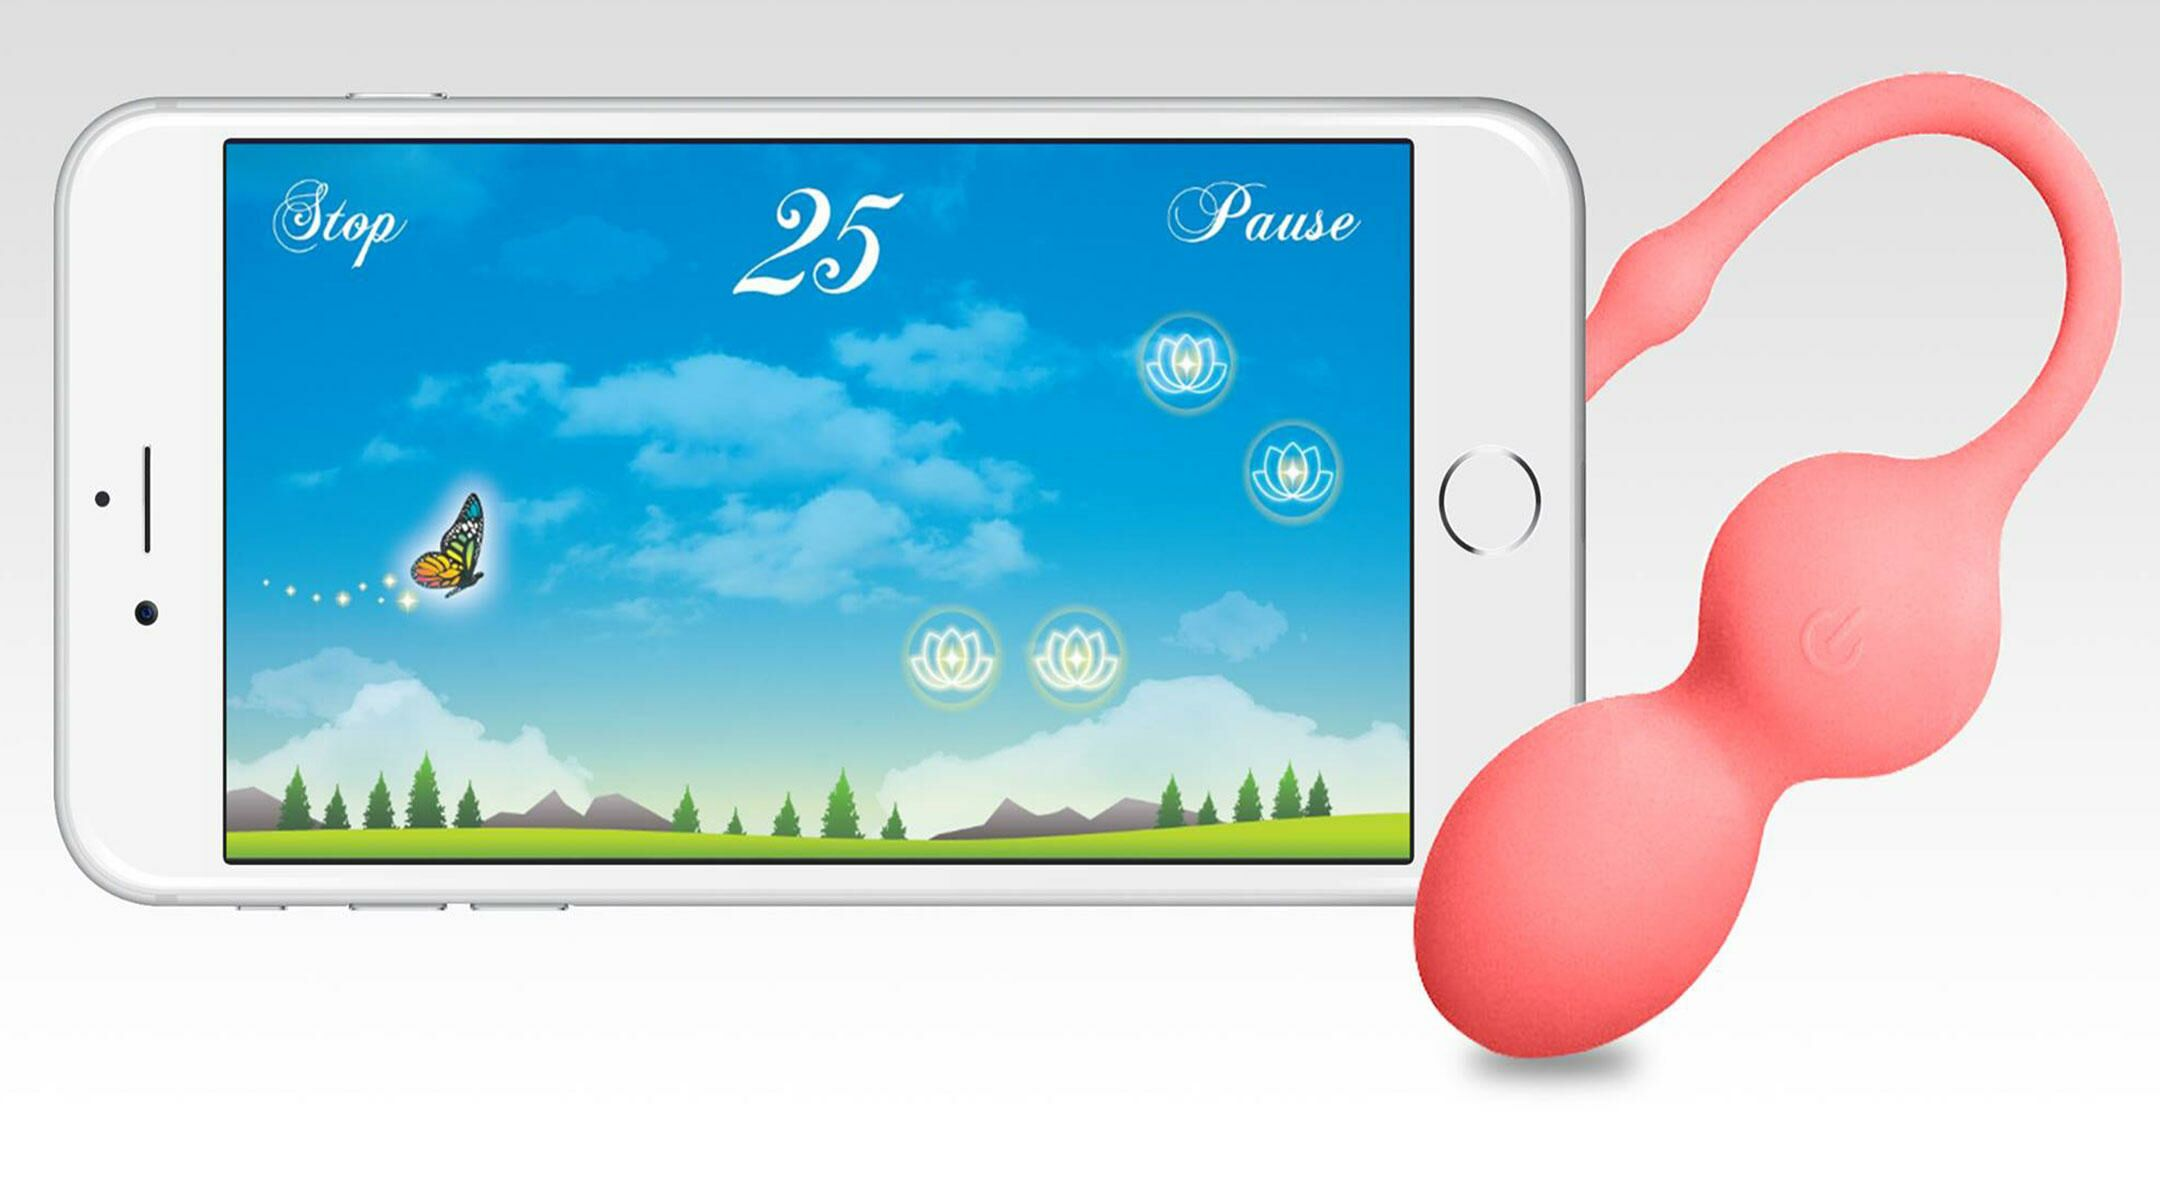 Perifit S Pelvic Floor Trainer Is Like A Video Game